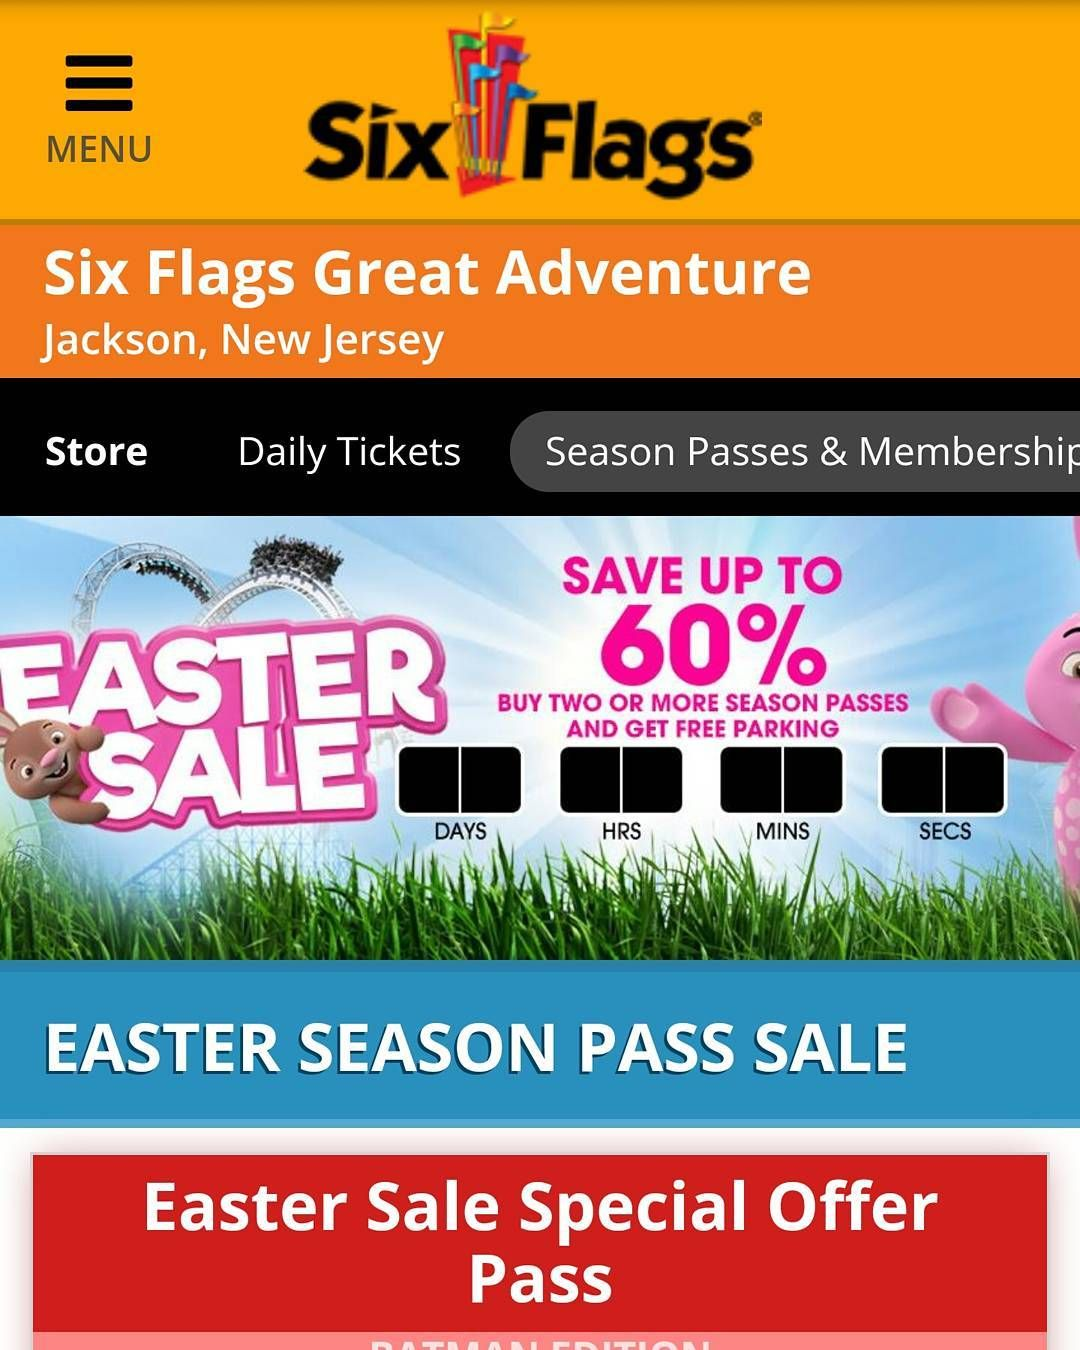 I M Getting A Seasonpass For Sixflags Sixflagsgreatadventure Iwanttogotothere Nj Six Flags Great Adventure Instagram Instagram Posts